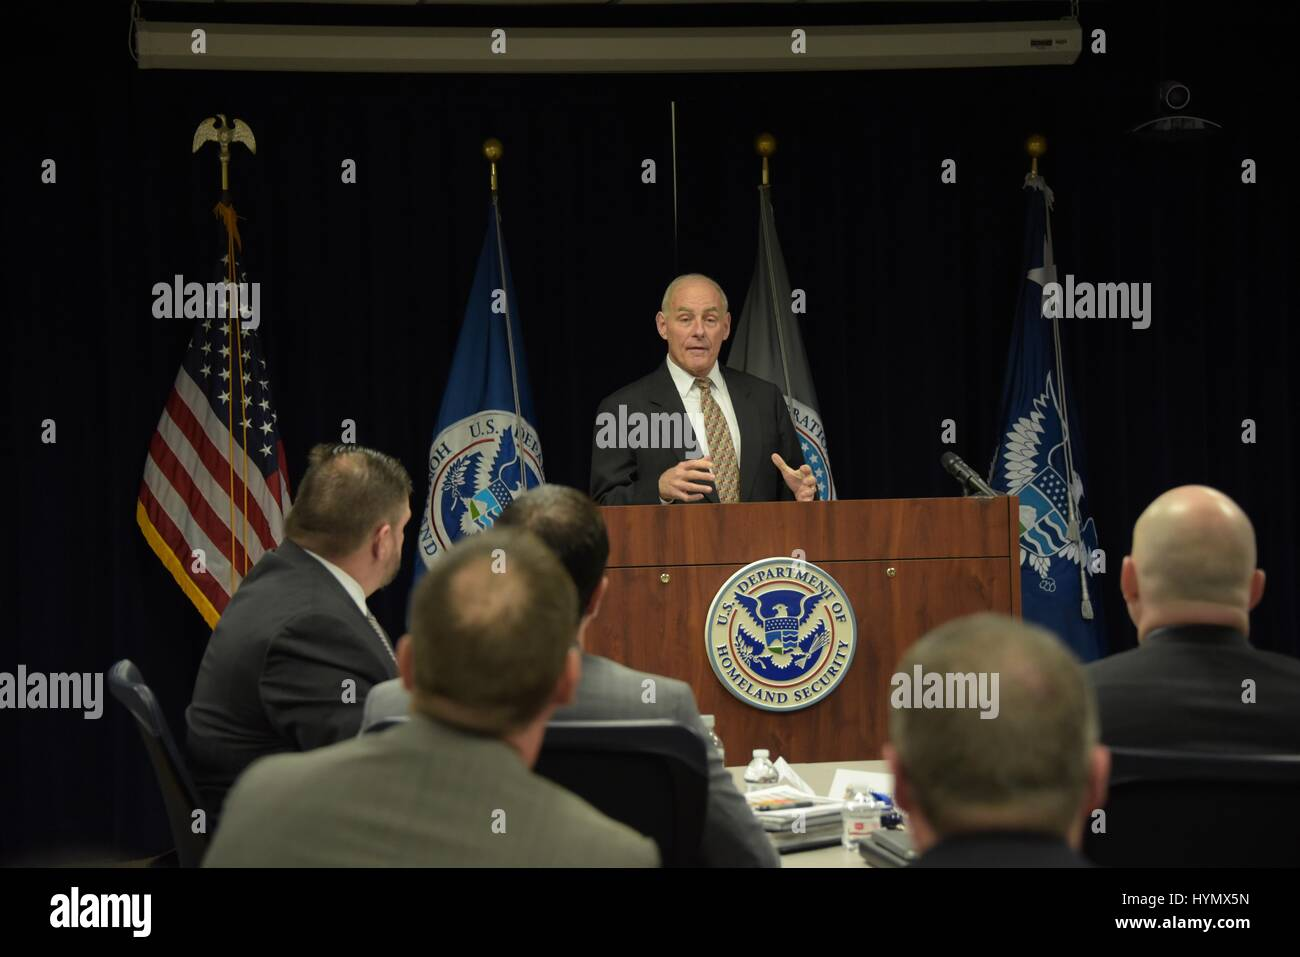 Secretary of Homeland Security John Kelly addresses an audience of US Immigration and Customs Enforcement at the Stock Photo